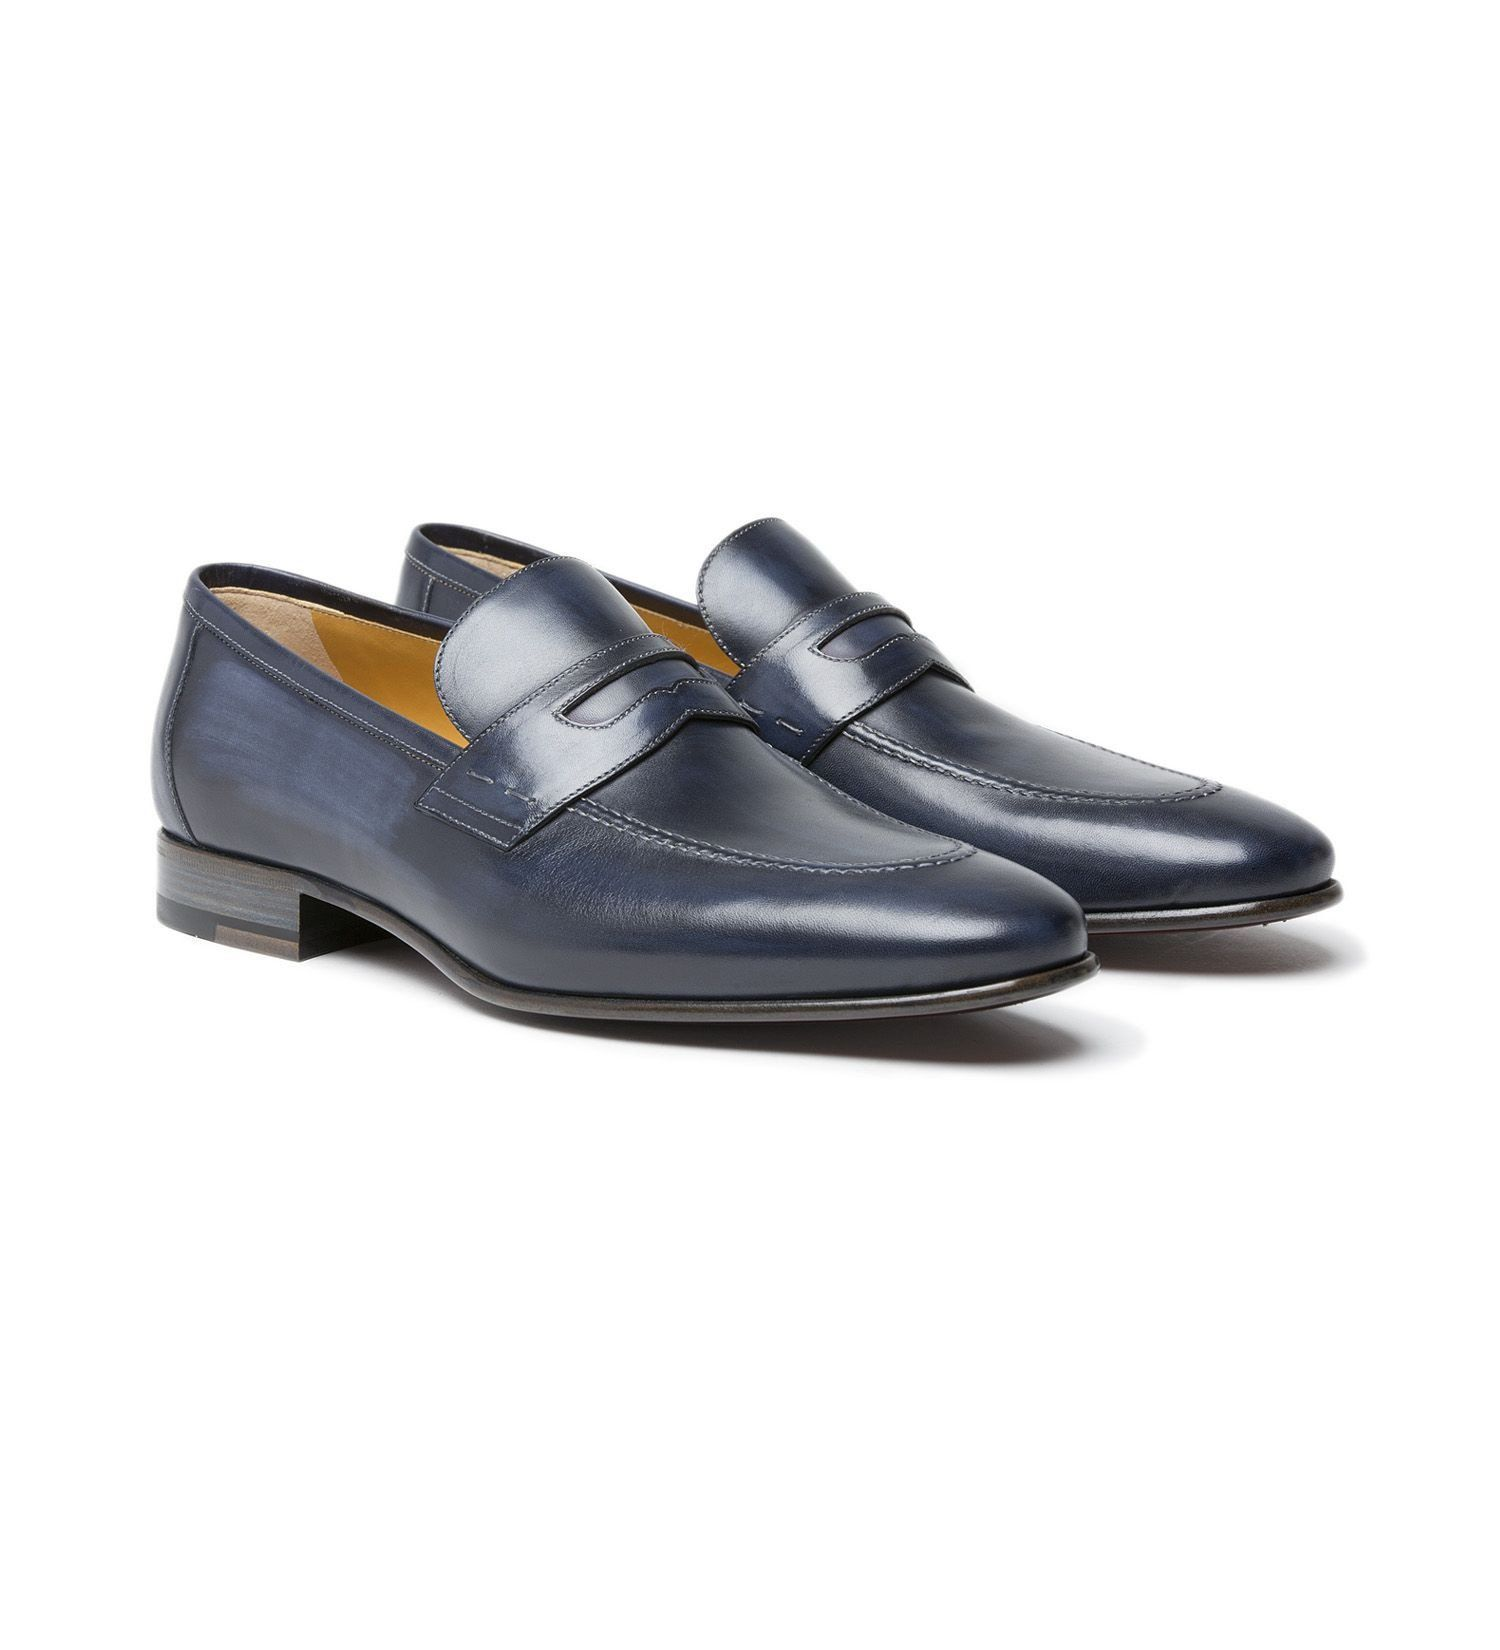 ANTIQUED LEATHER SLIP-ON,SHOES,A.TESTONI, | GentRow.com